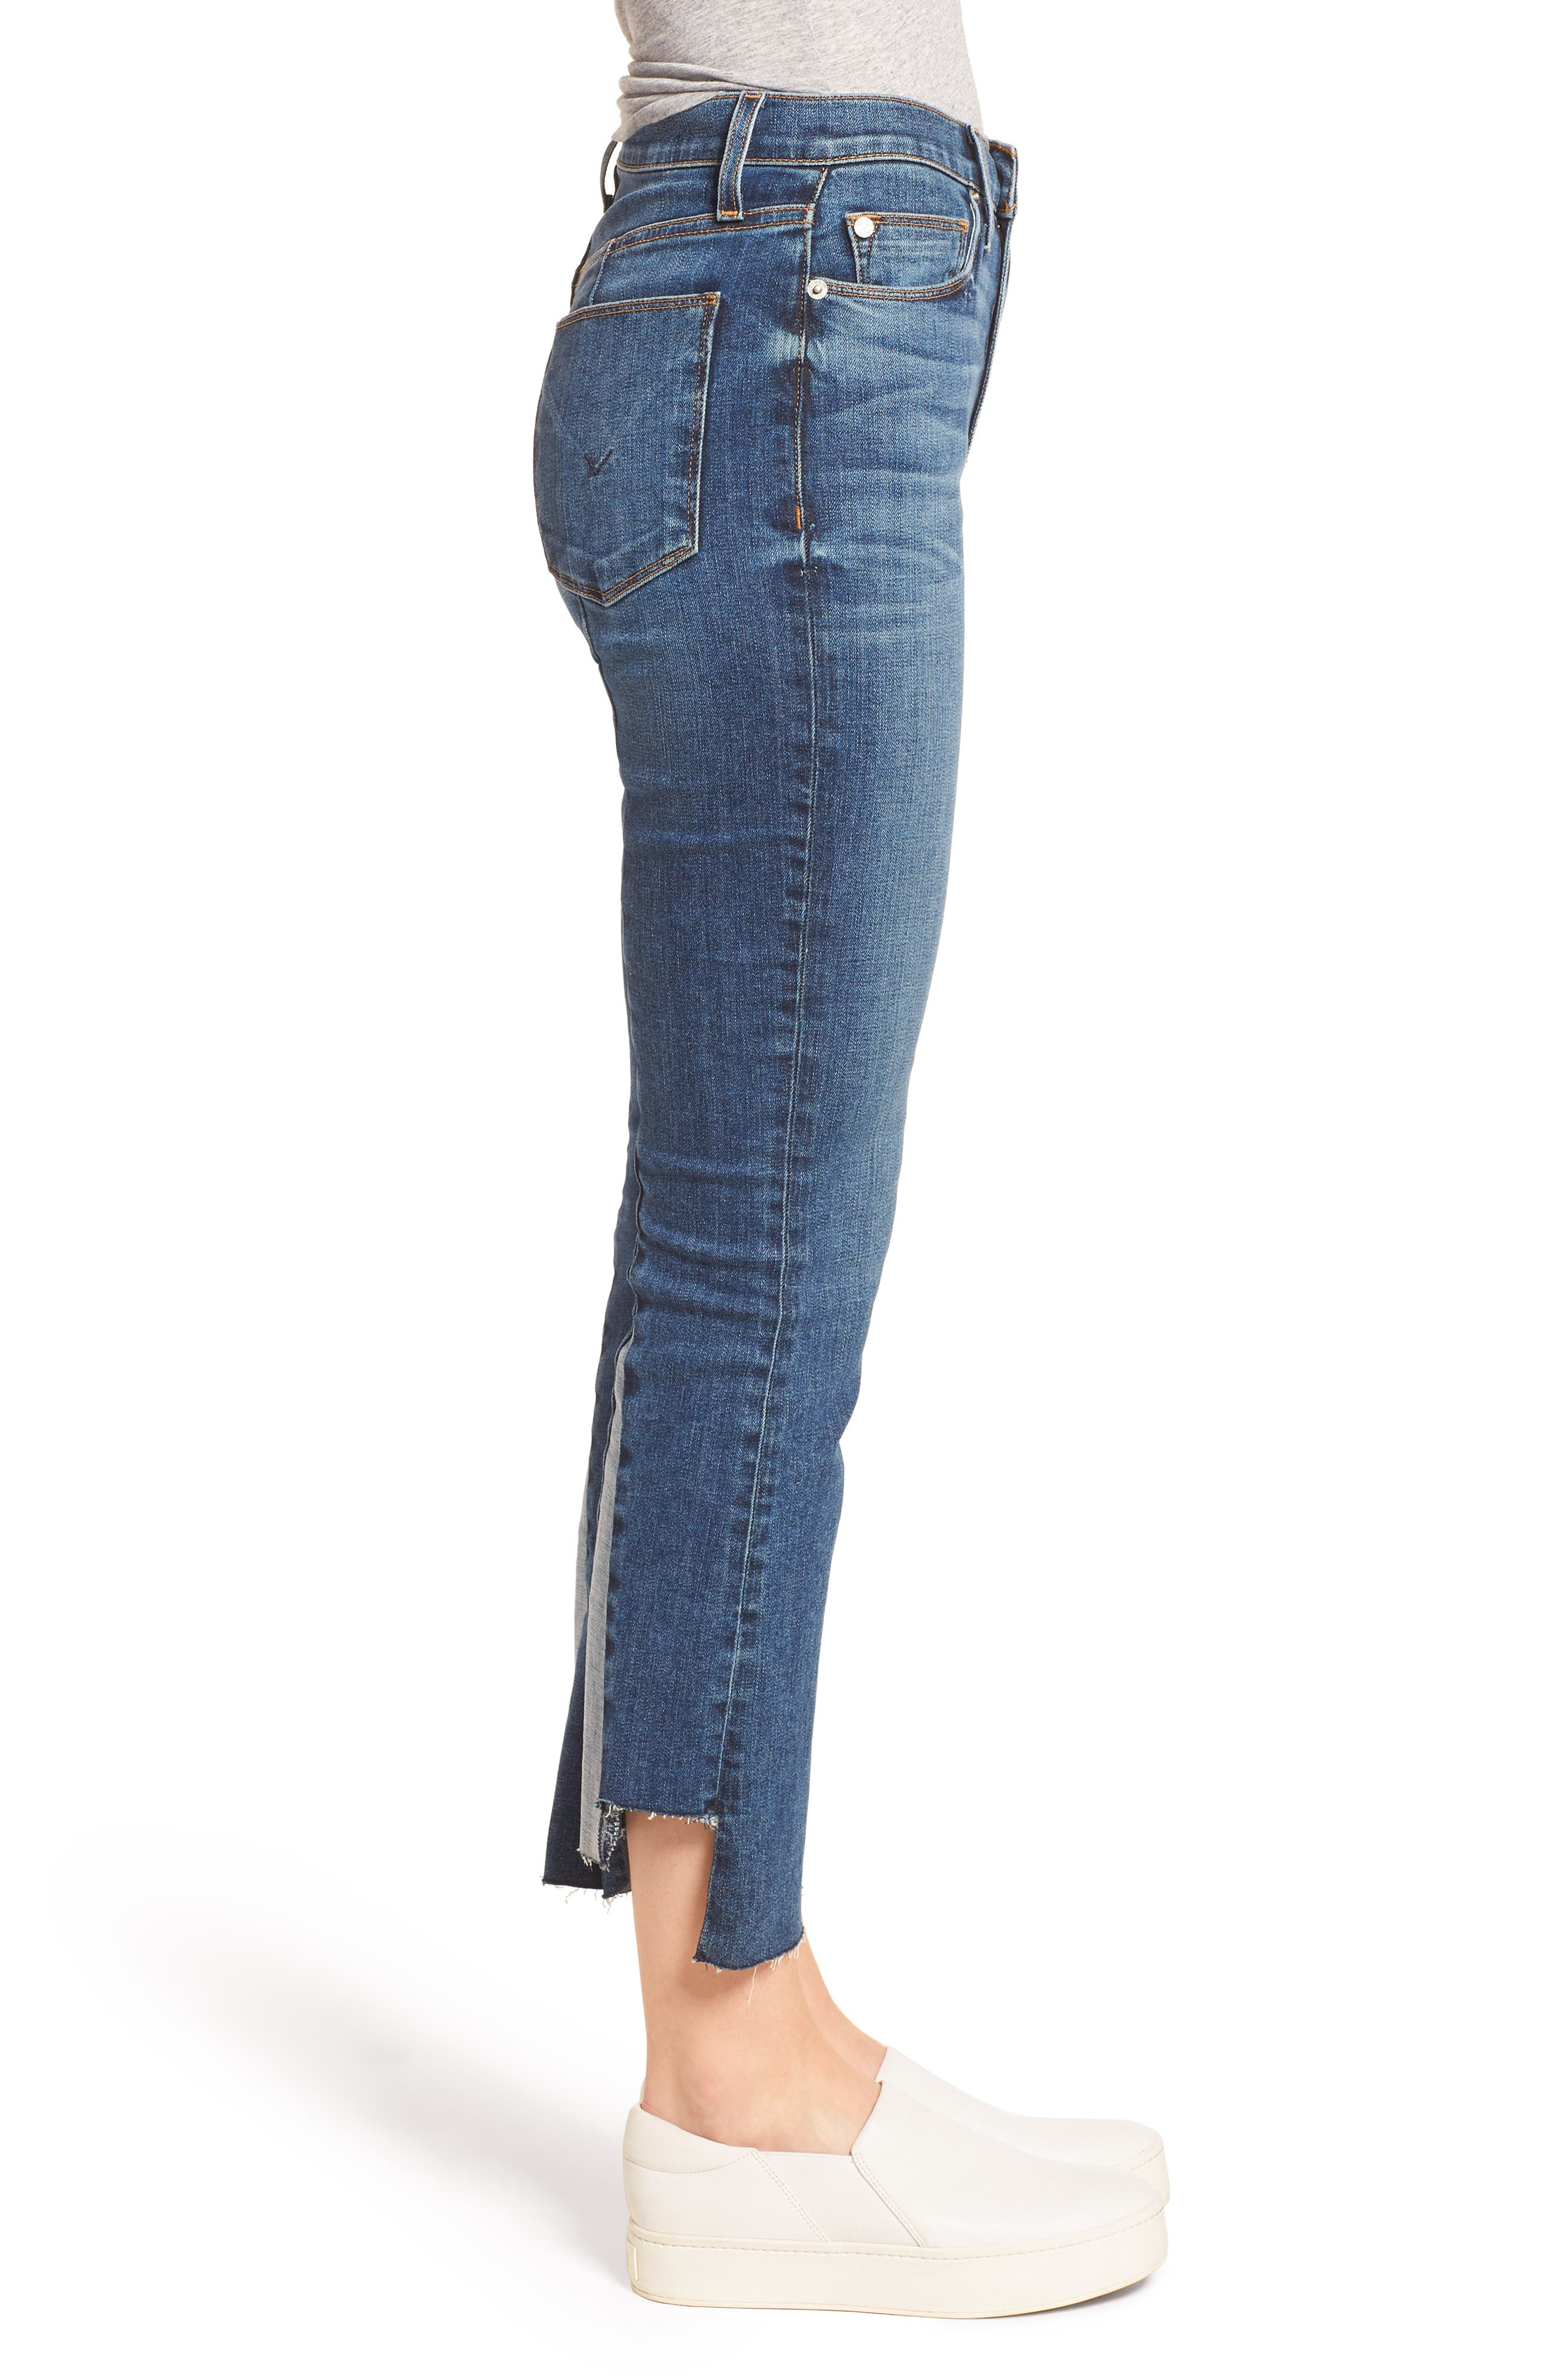 Holly High Waist Crop Flare Jeans,                             Alternate thumbnail 6, color,                             Loss Control